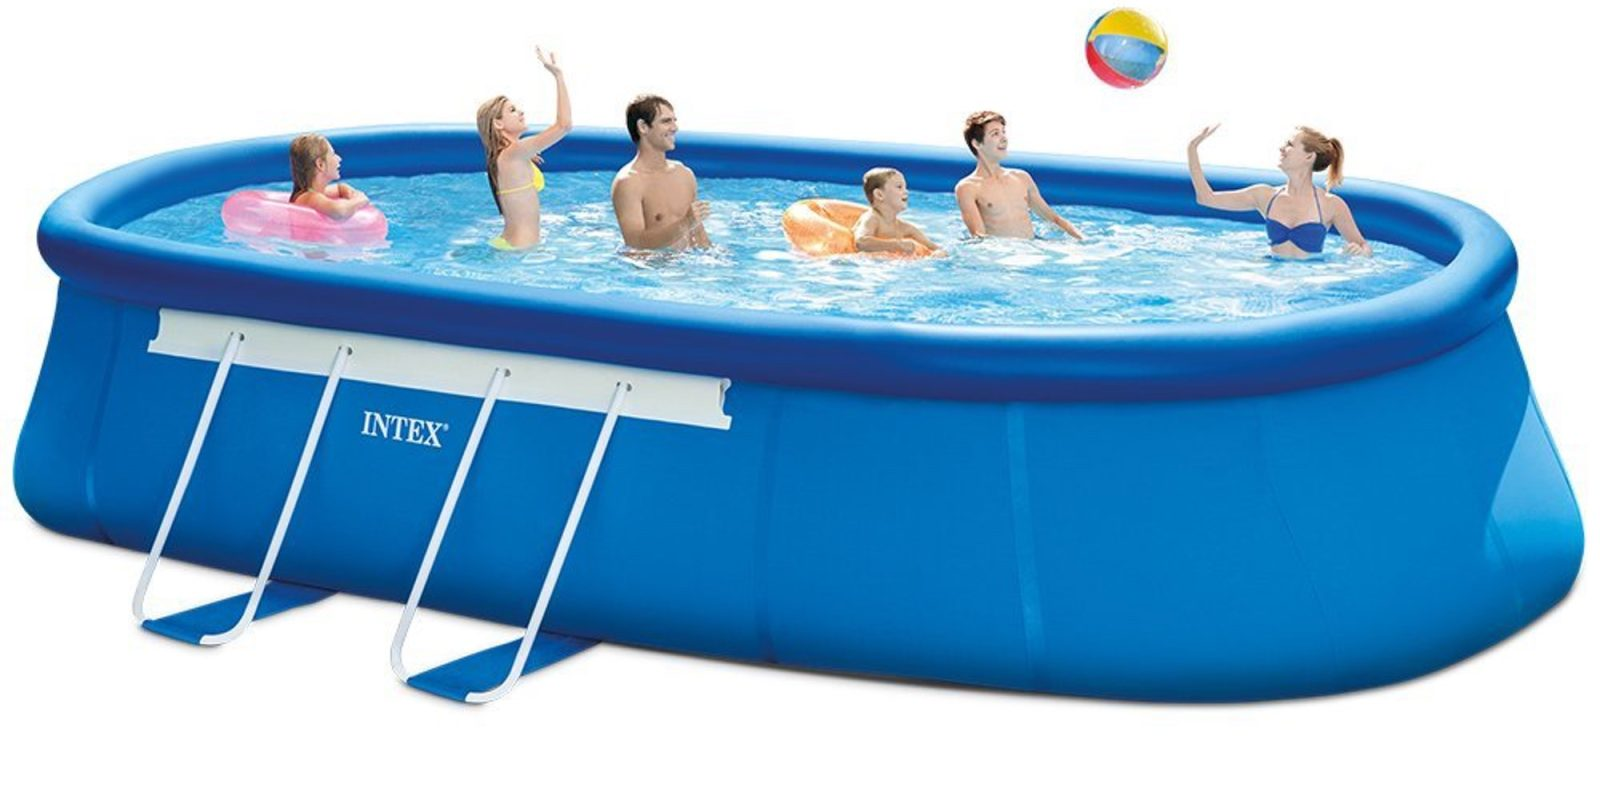 intex 20ft x 12ft x 48in oval frame pool set 350 shipped